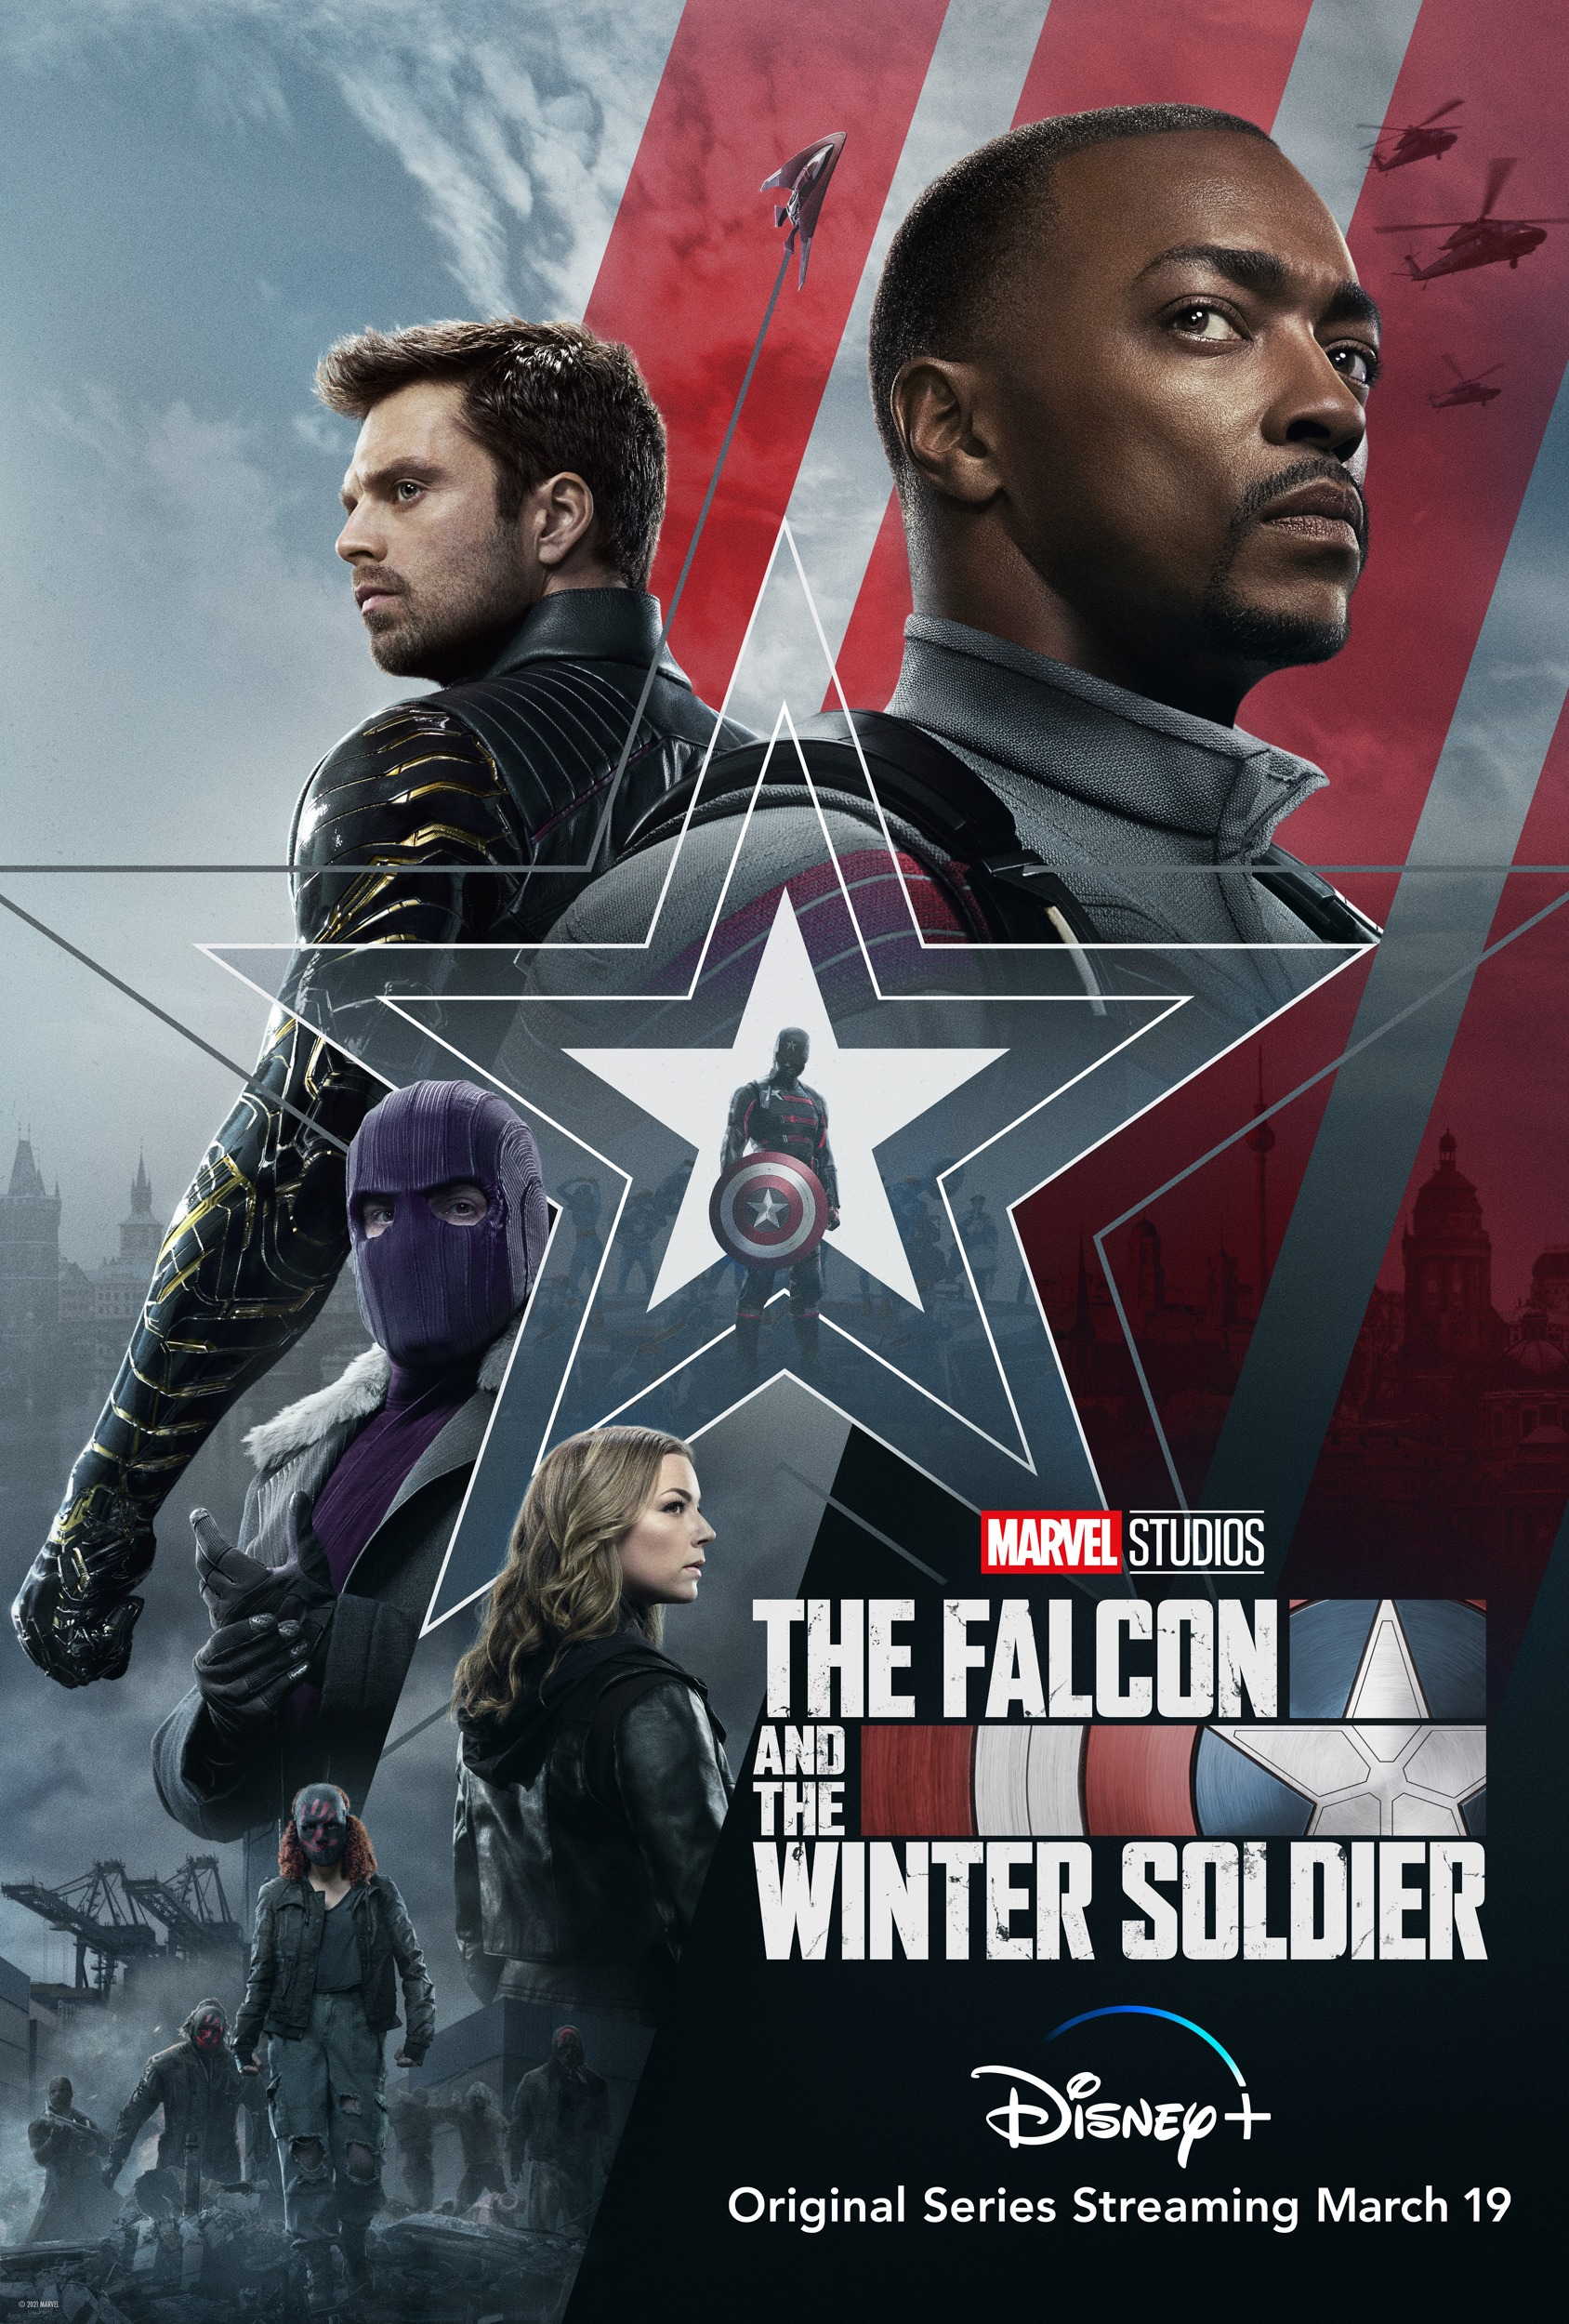 The Falcon and the Winter Soldier 2021 S01 Hindi DSNP Original Series Official Trailer 1080p HDRip 25MB Download